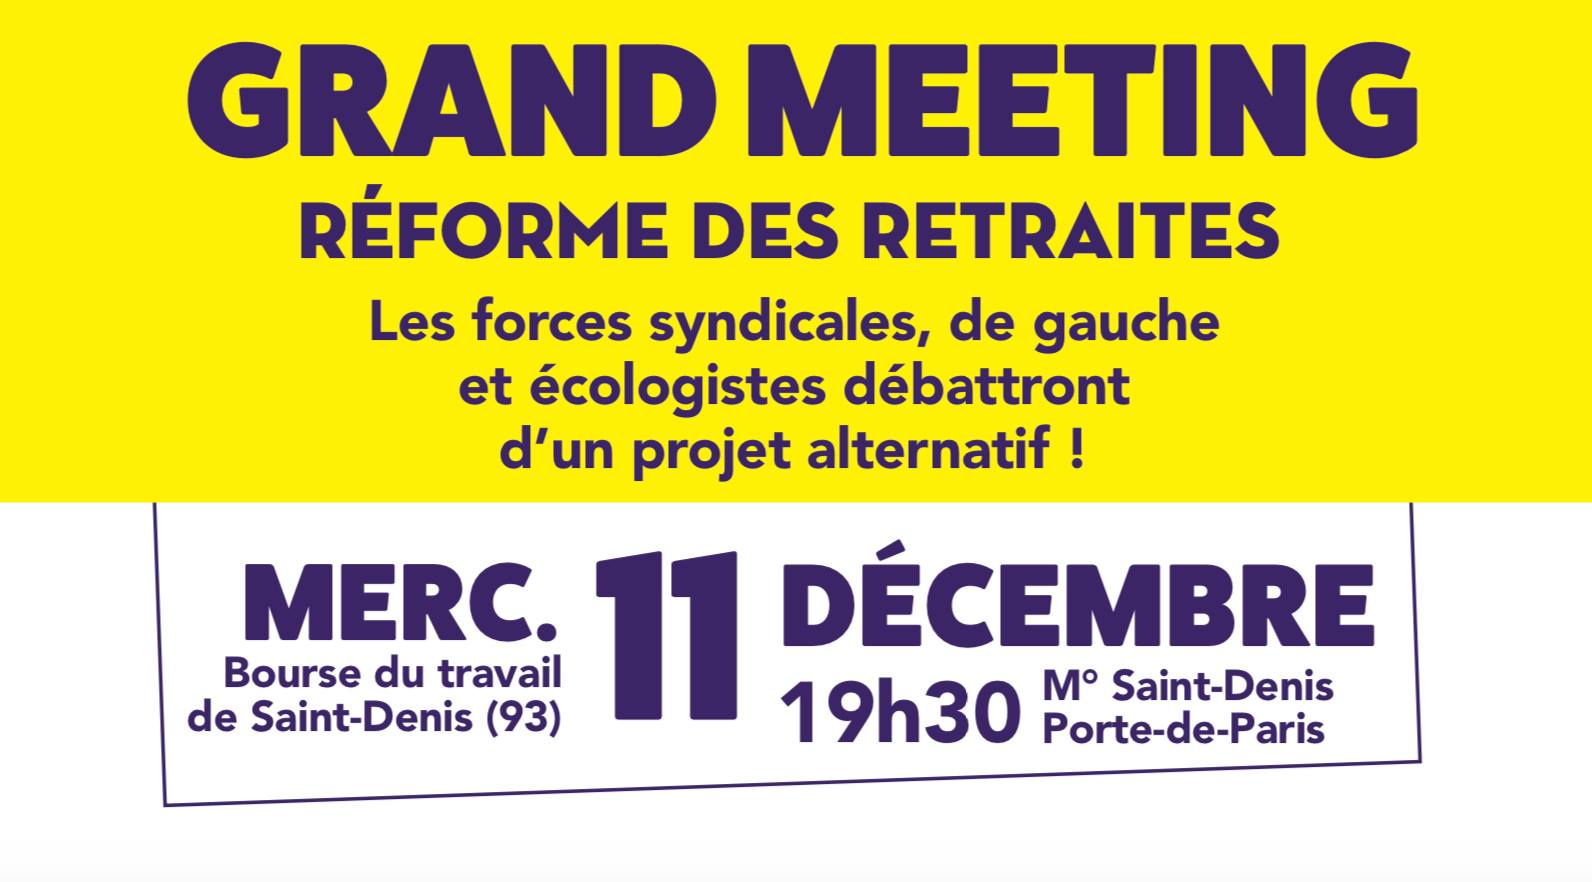 Grand Meeting le 11 décembre 2019